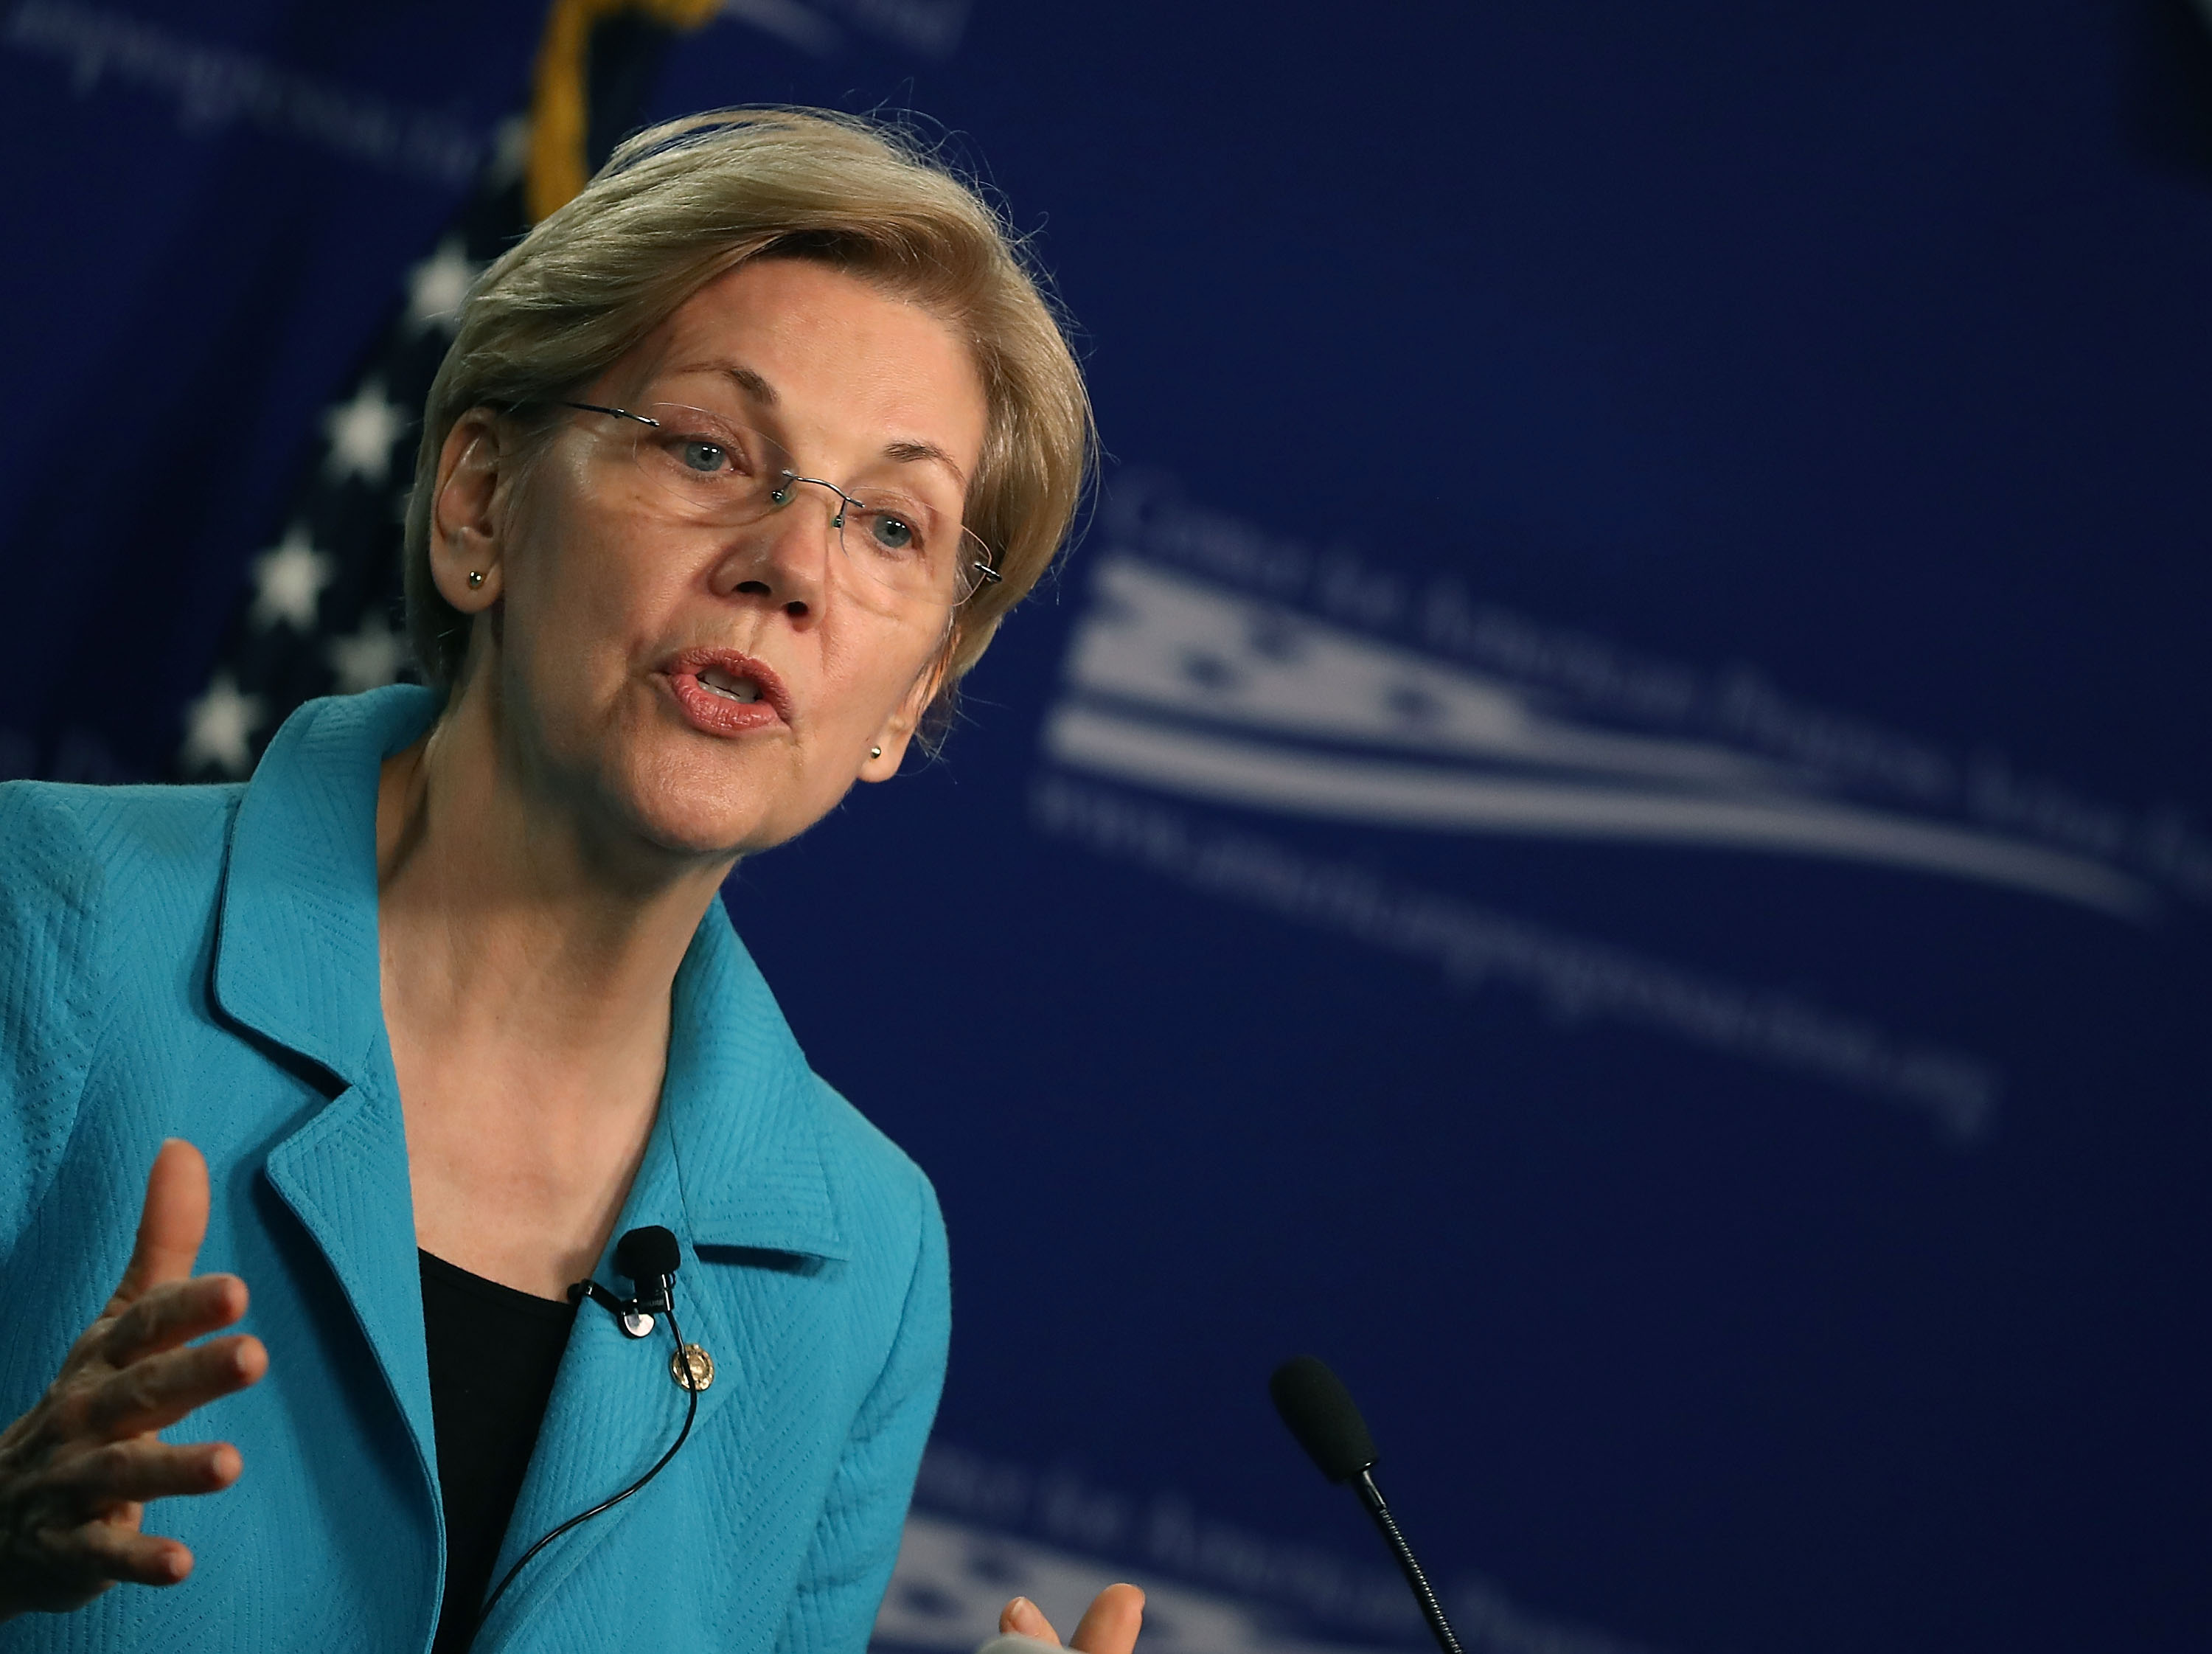 Sen. Elizabeth Warren (D-MA) Speaks At The Center For American Progress On The American Middle Class